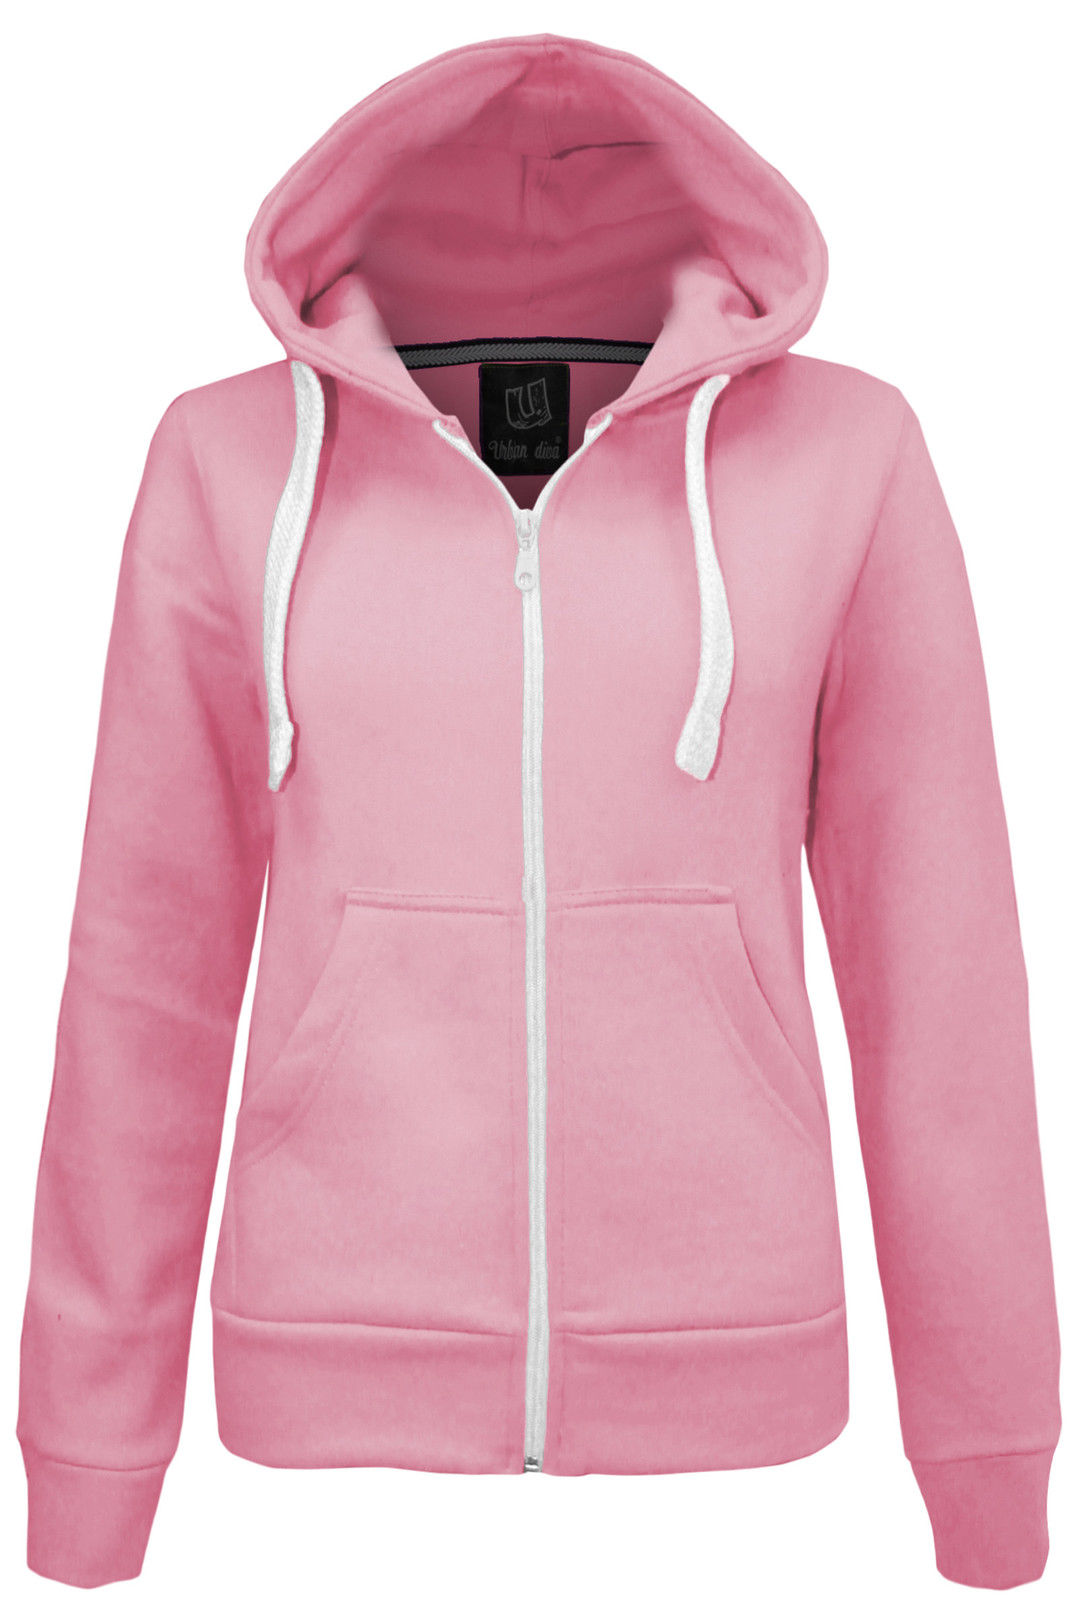 Fifth Parallel Threads FPT Women's Basic Zip Up Hoodie Fleece Jacket. by Fifth Parallel Threads. $ - $ $ 19 $ 23 99 Prime. FREE Shipping on eligible orders. Some sizes/colors are Prime eligible. 4 out of 5 stars The North Face Women's Crescent Full Zip Hoodie (Past Season).